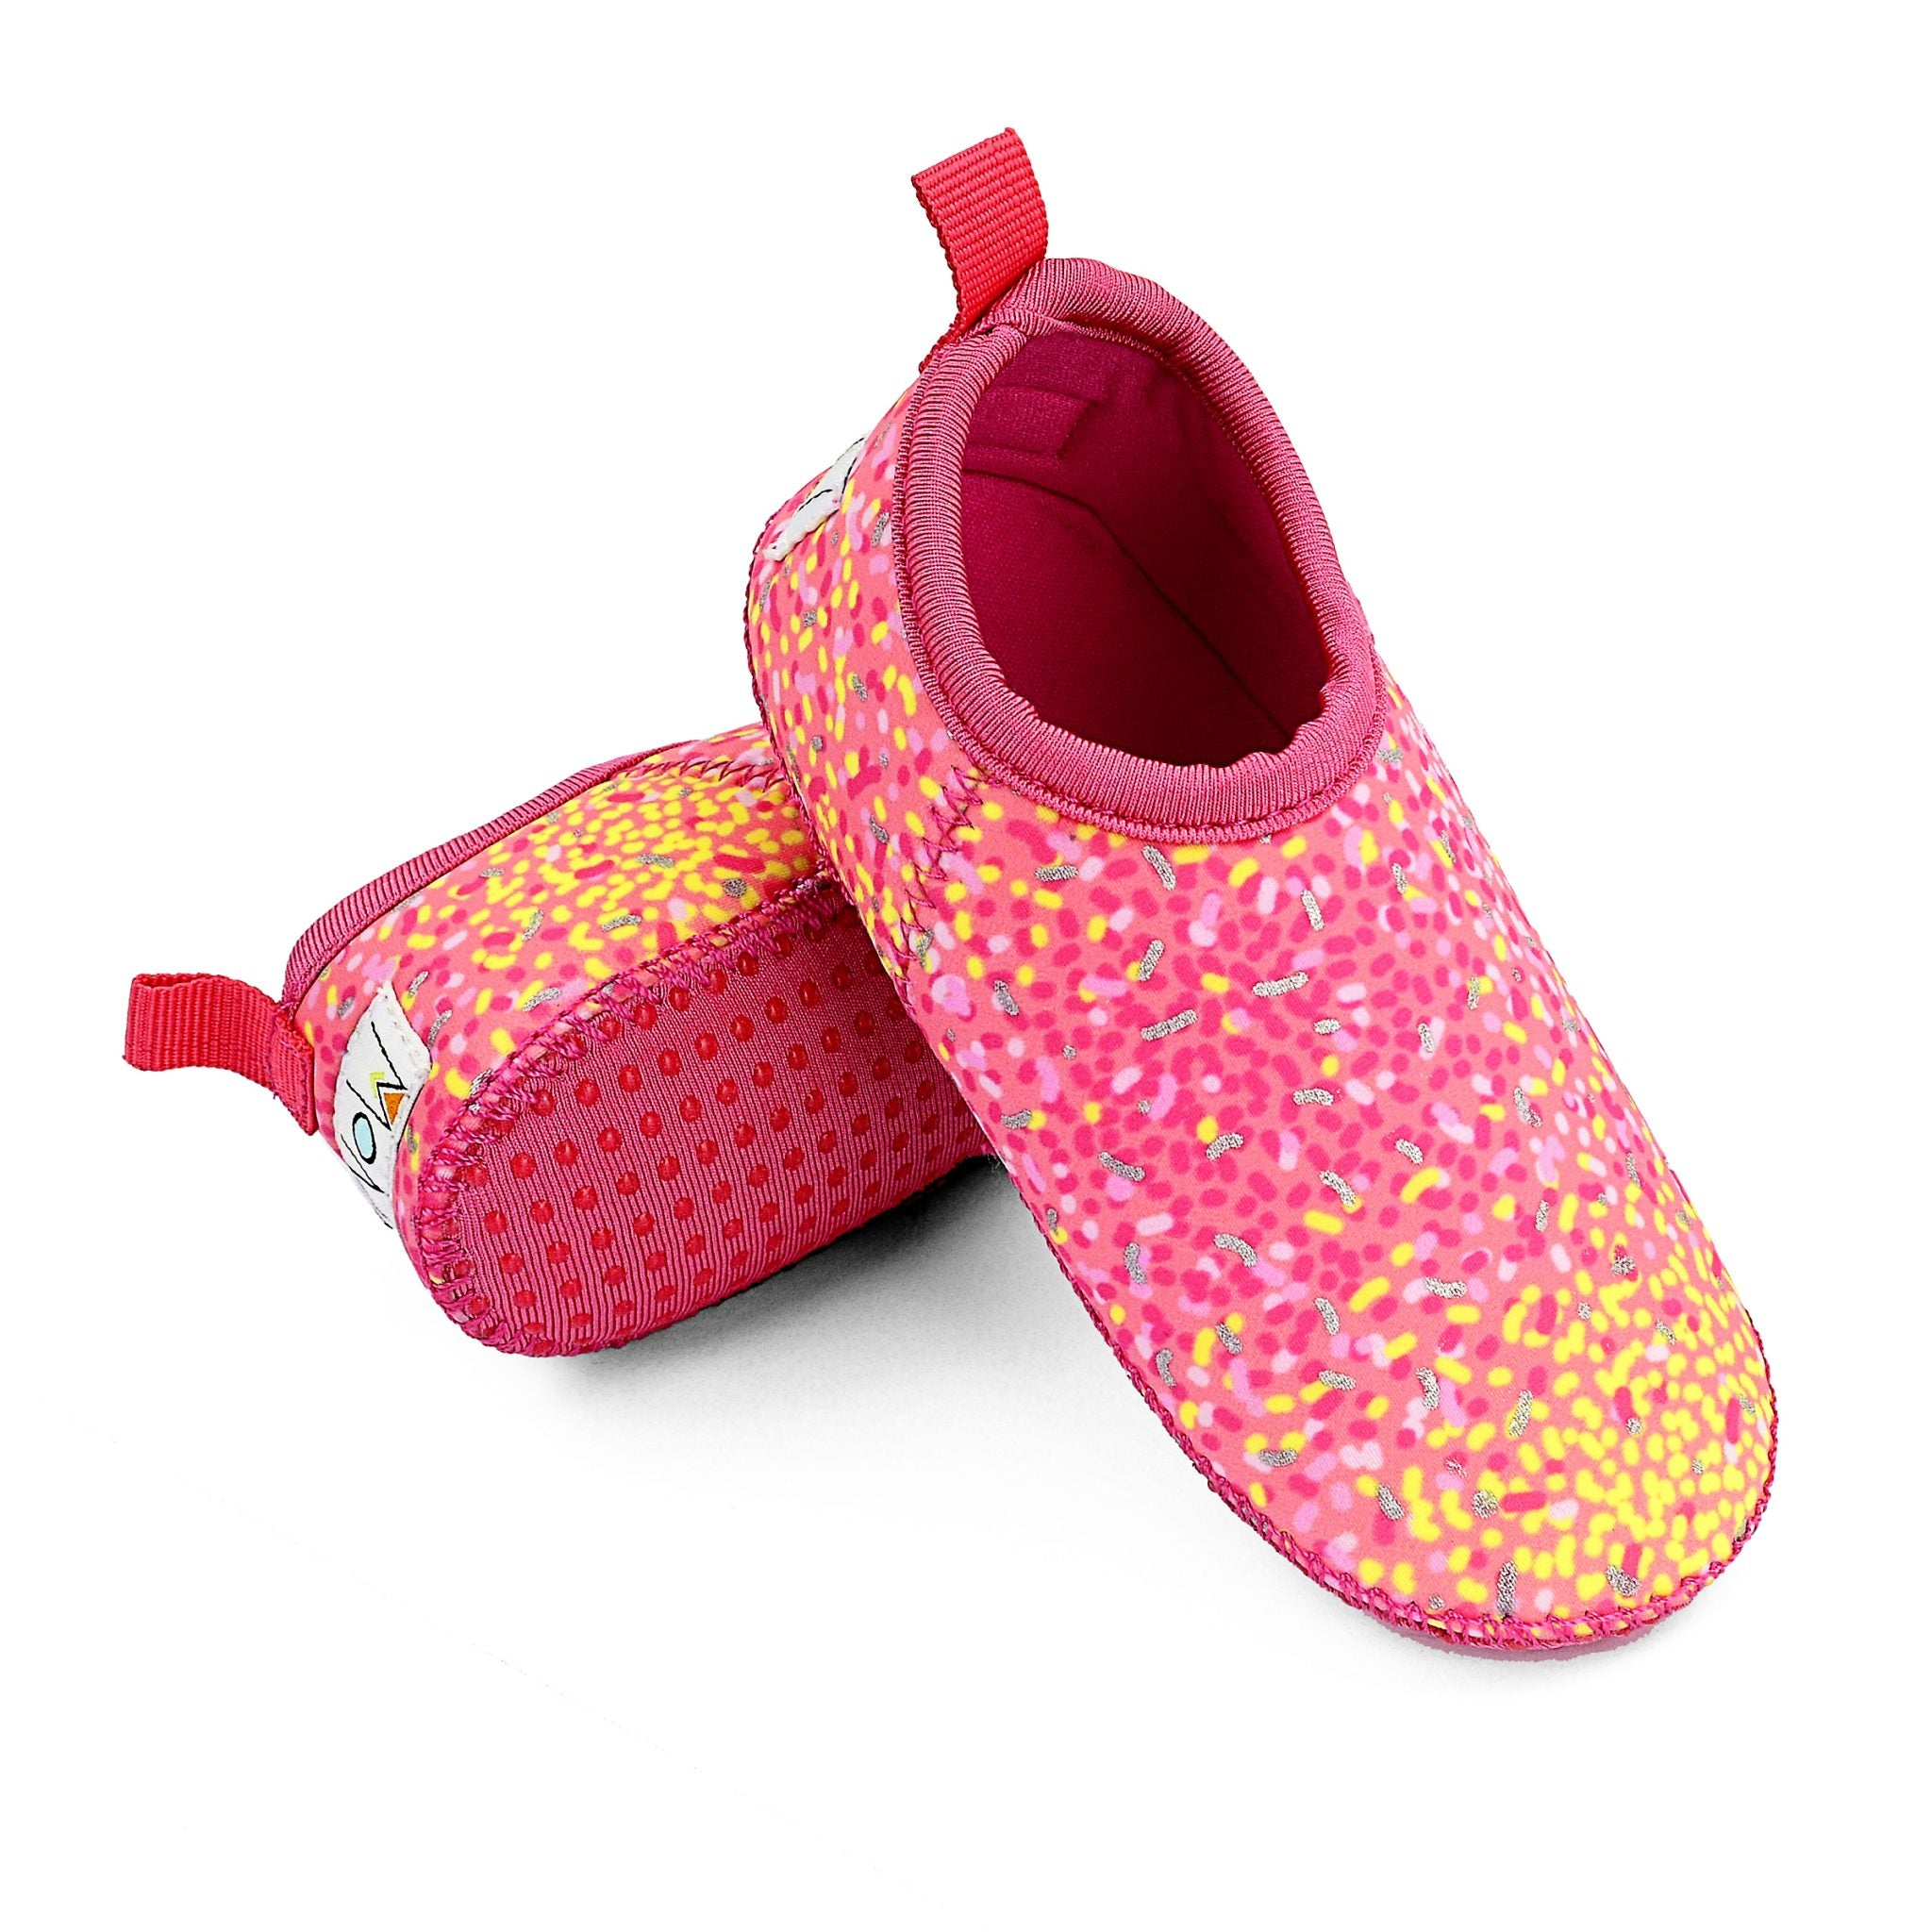 Starburst Toddler Soft Sole Beach Shoe